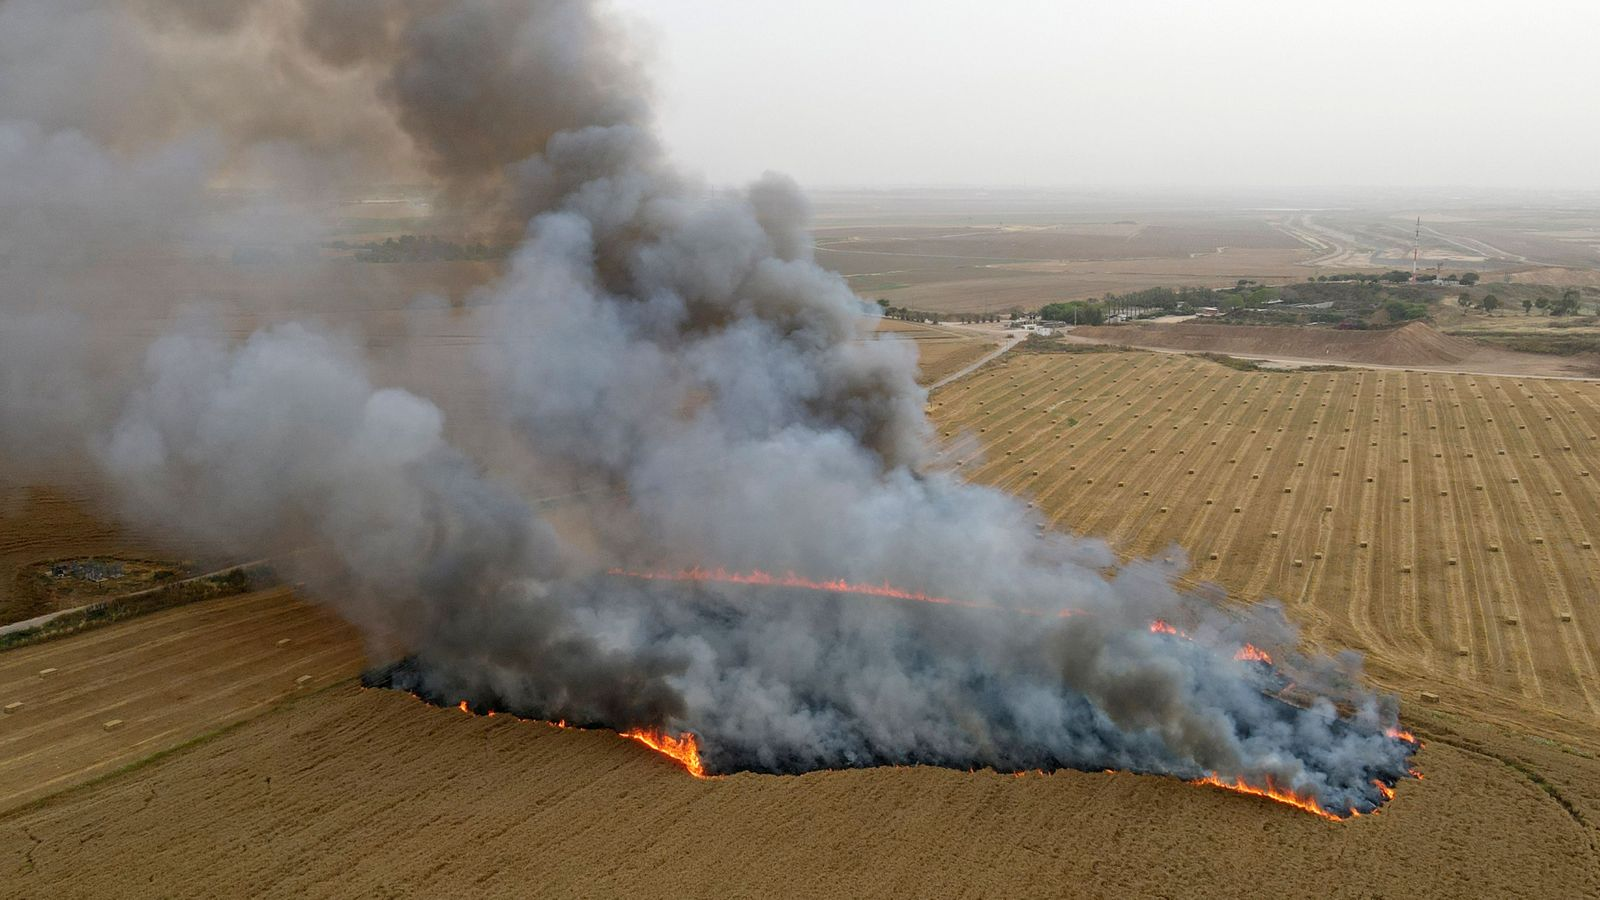 TOPSHOT-ISRAEL-PALESTINIAN-CONFLICT-FIRE